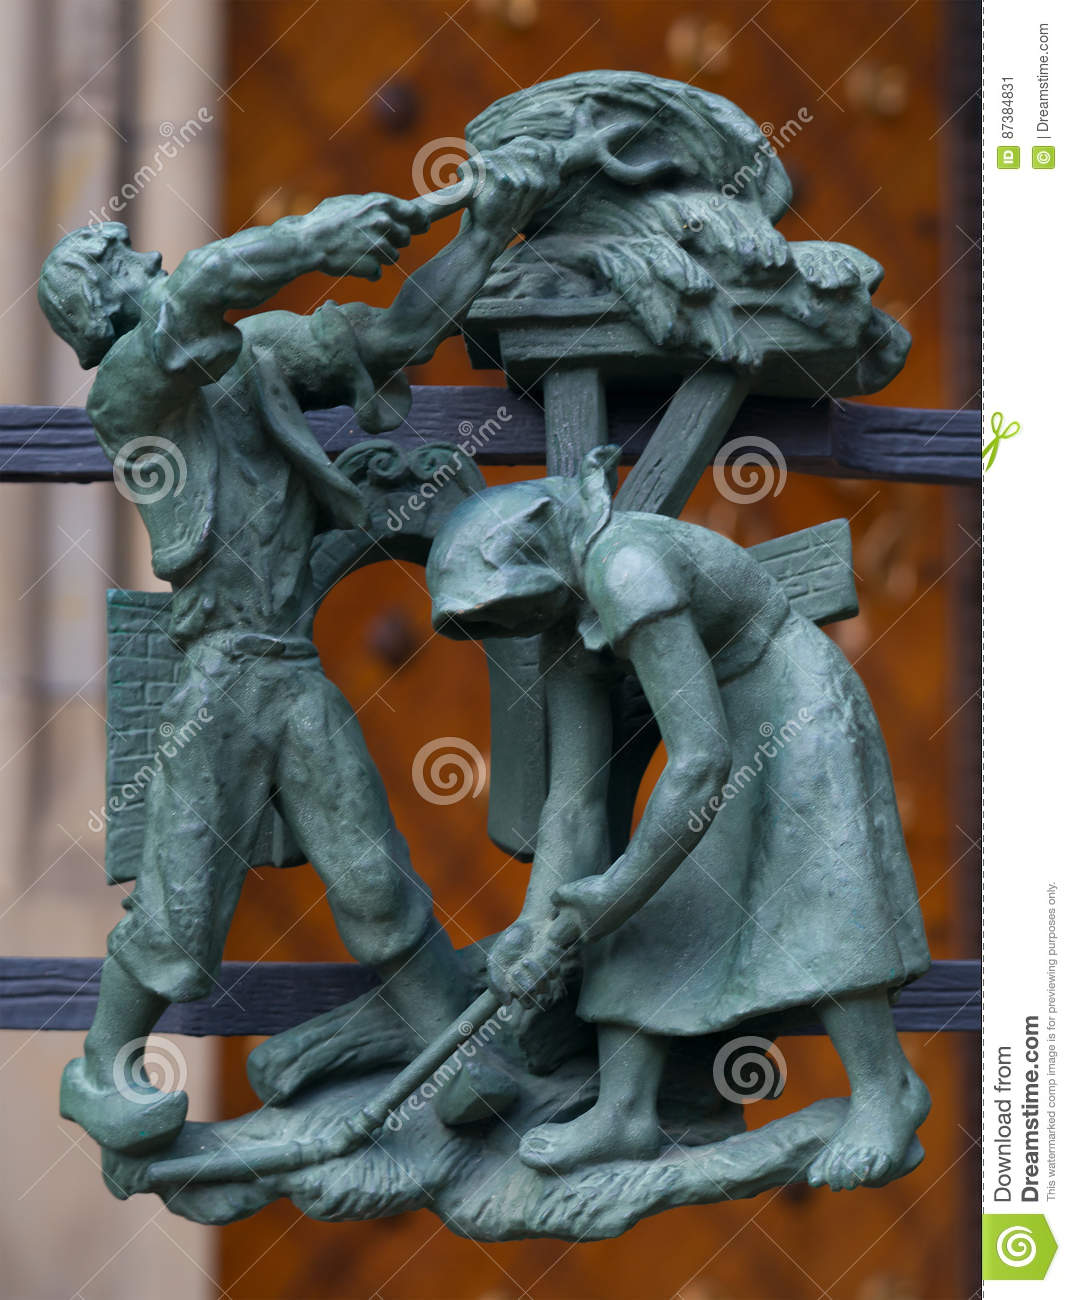 Crayfish-pagan symbols of the zodiac on the Golden Gate St. Vitus Cathedral in Prague